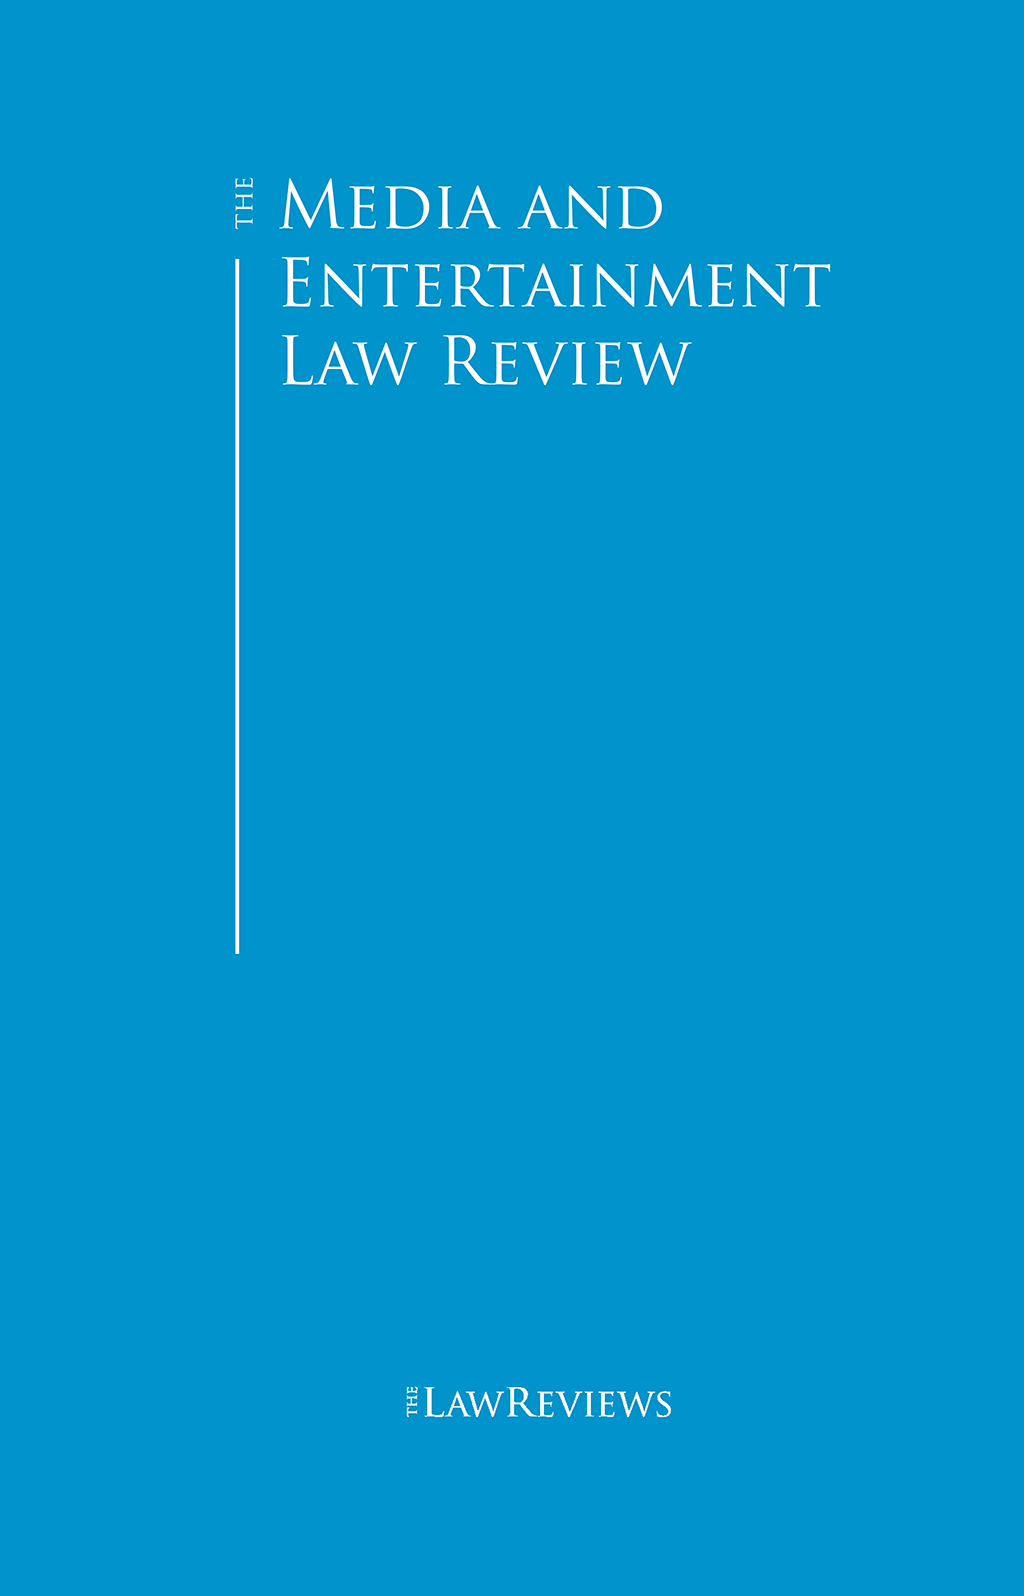 The Media and Entertainment Law Review